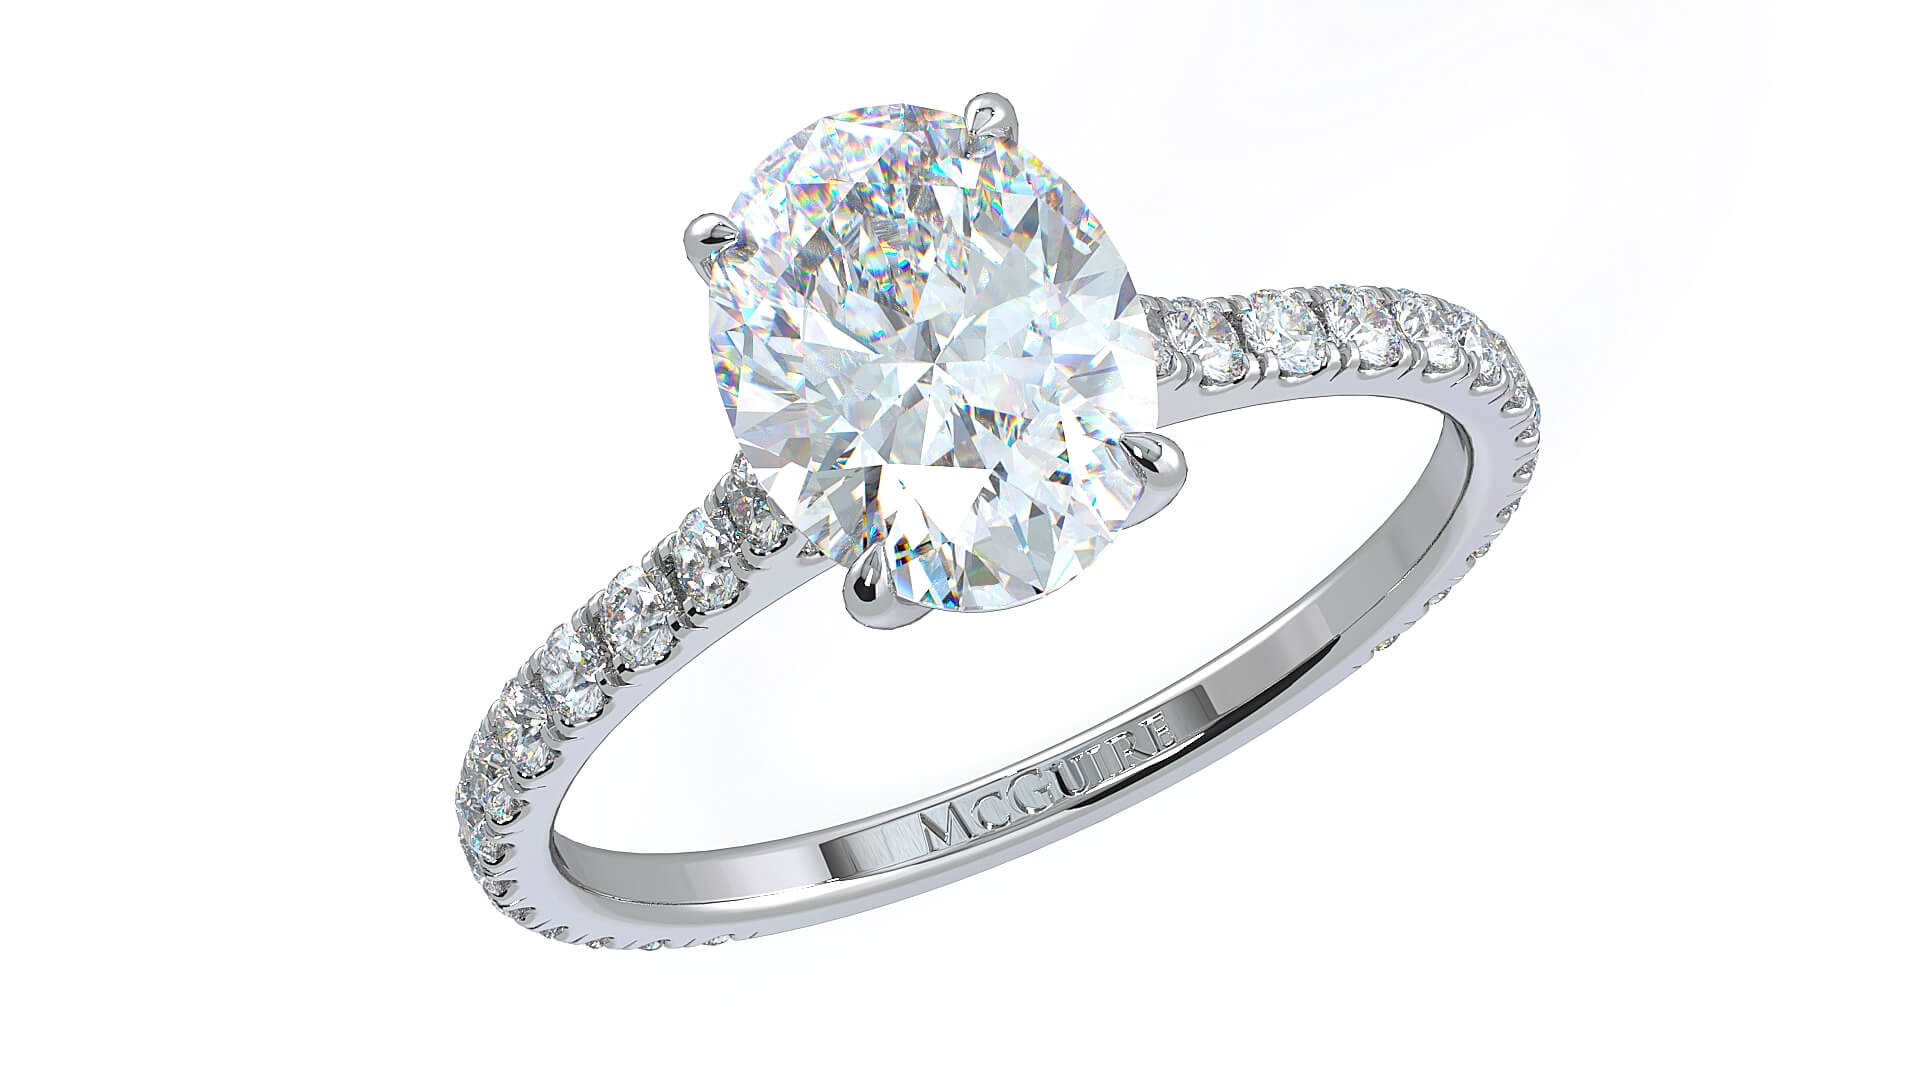 Oval diamond engagement ring by McGuire Diamonds